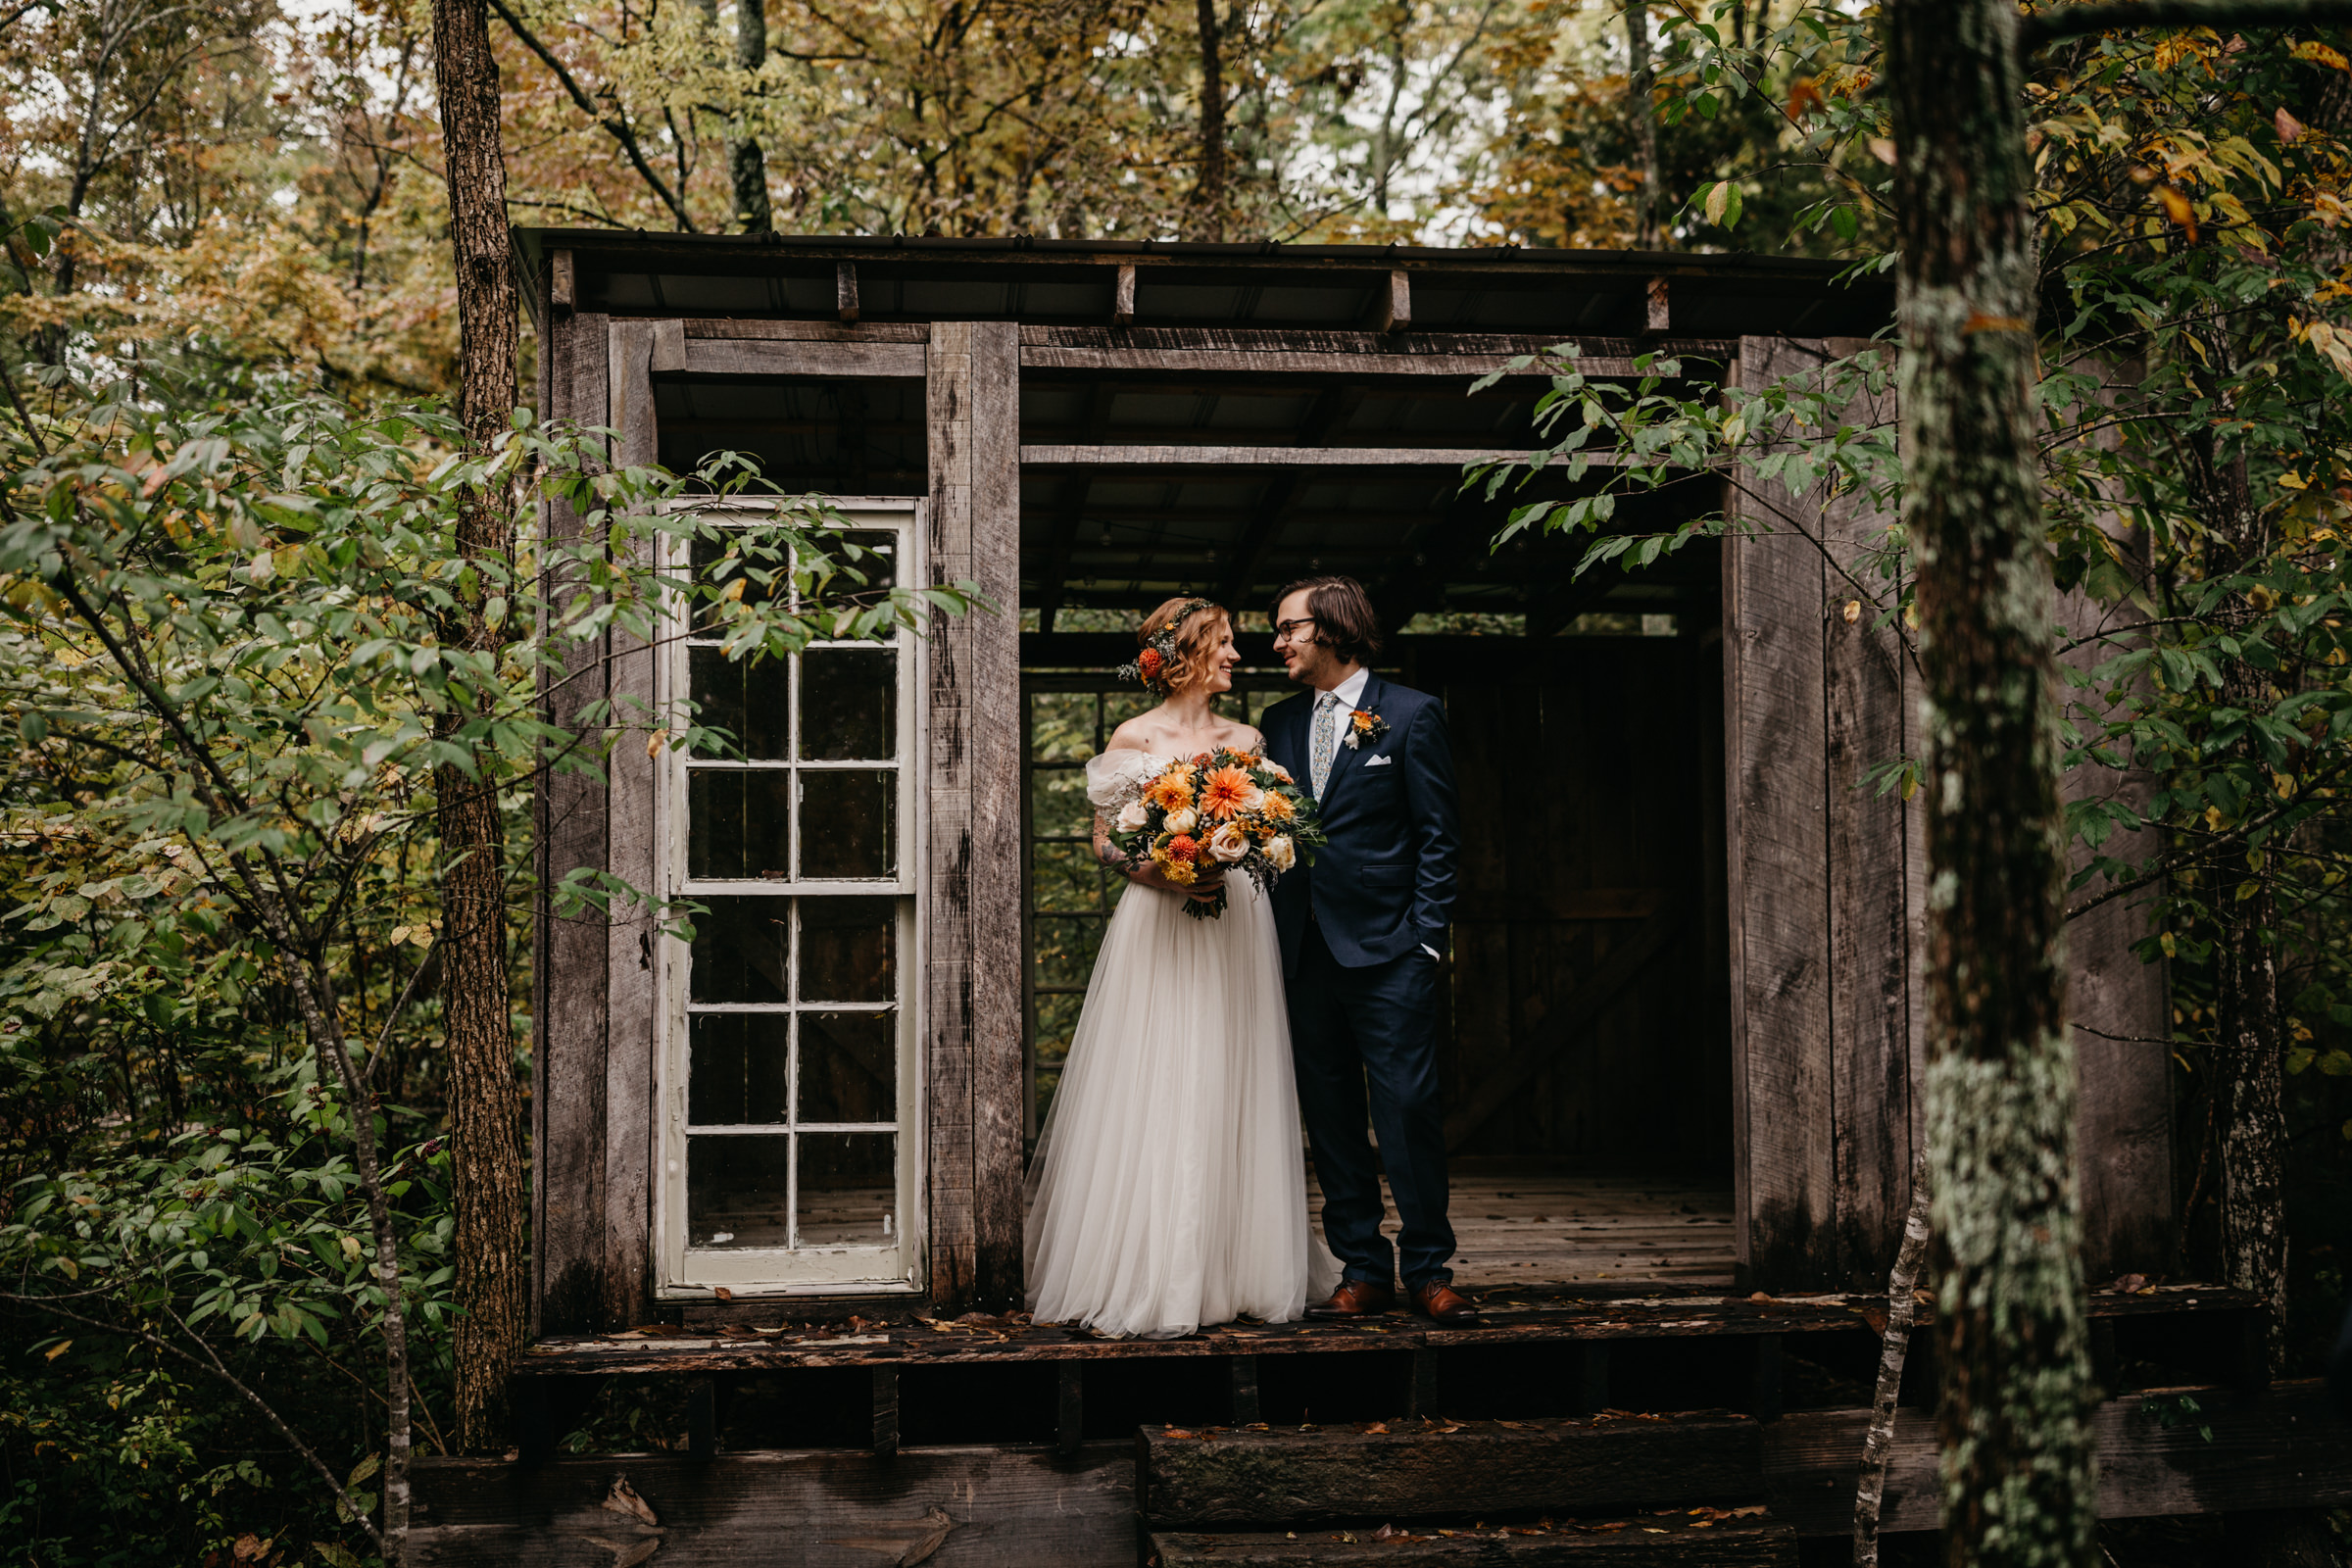 Wedding packages - 2019 and 2020 wedding day packages currently start at $2700Elopement photography starts at $1250 (limited to true elopements & weddings less than 25 guests)